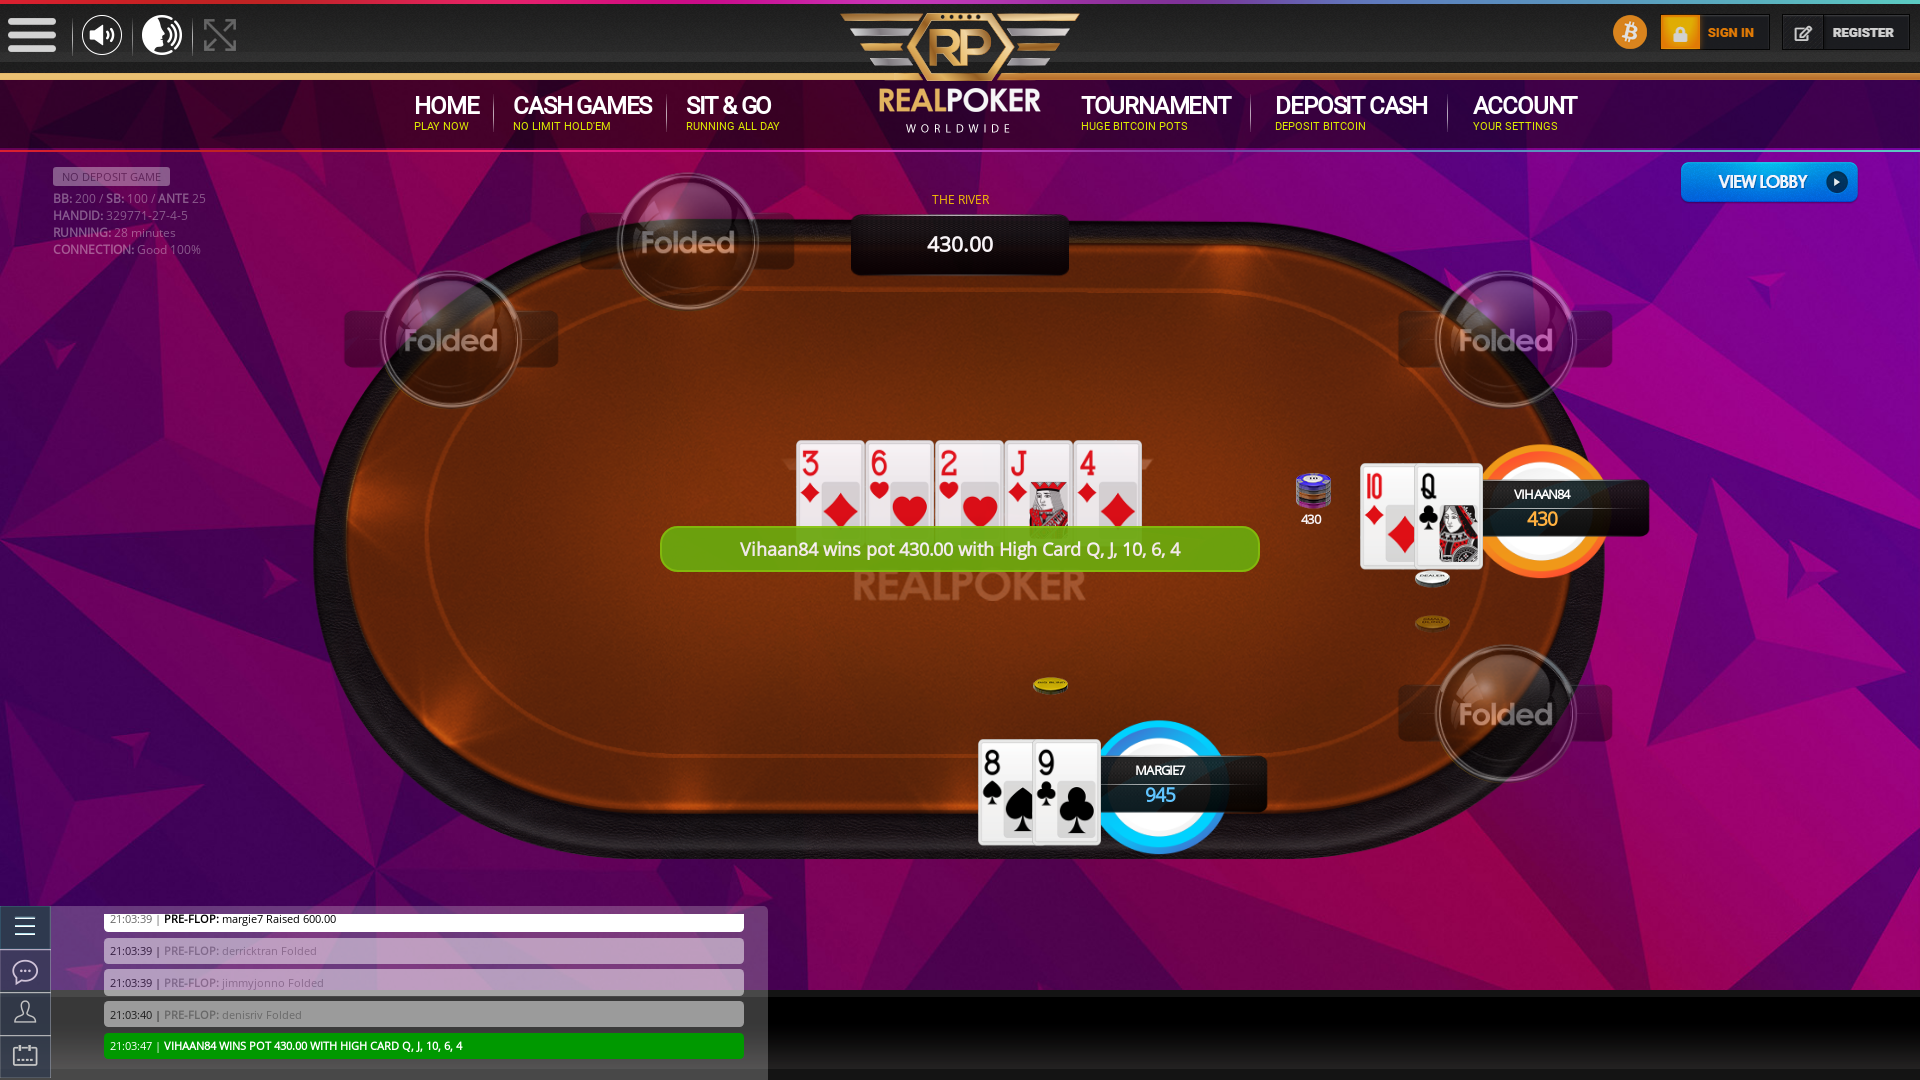 Real poker on a 10 player table in the 28th minute of the game